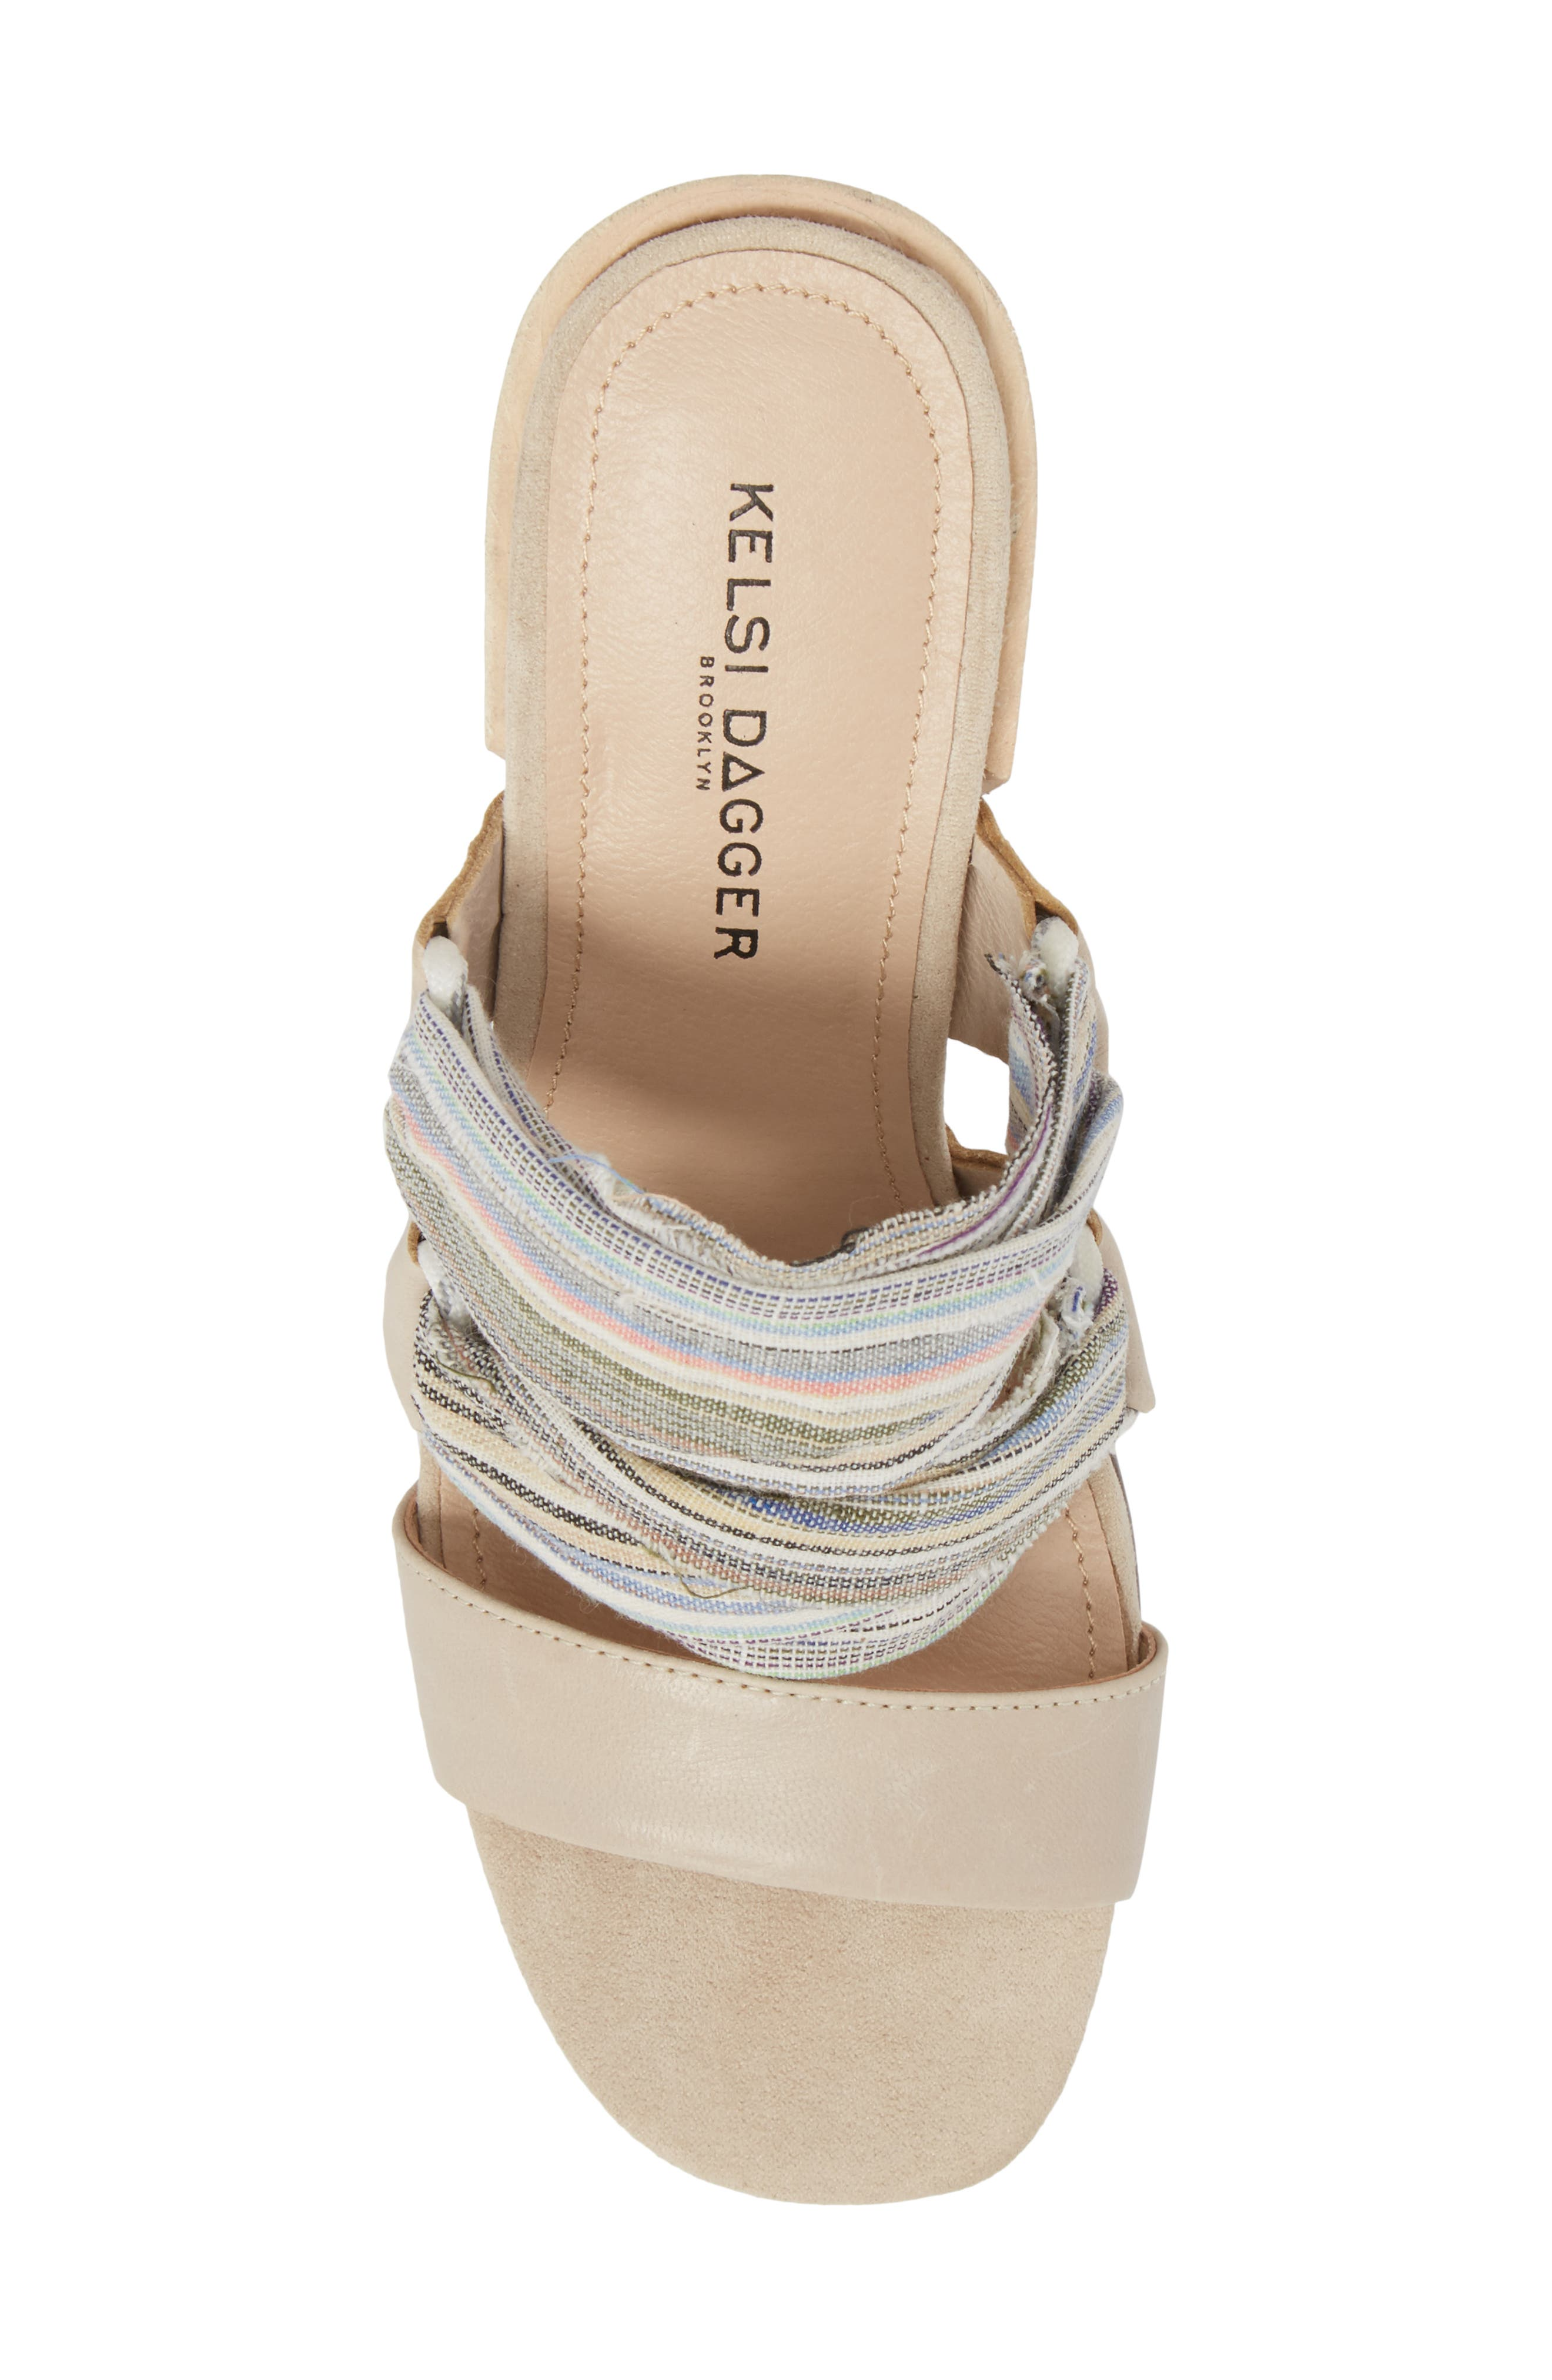 Monaco Block Heel Sandal,                             Alternate thumbnail 5, color,                             Bone/ Multi